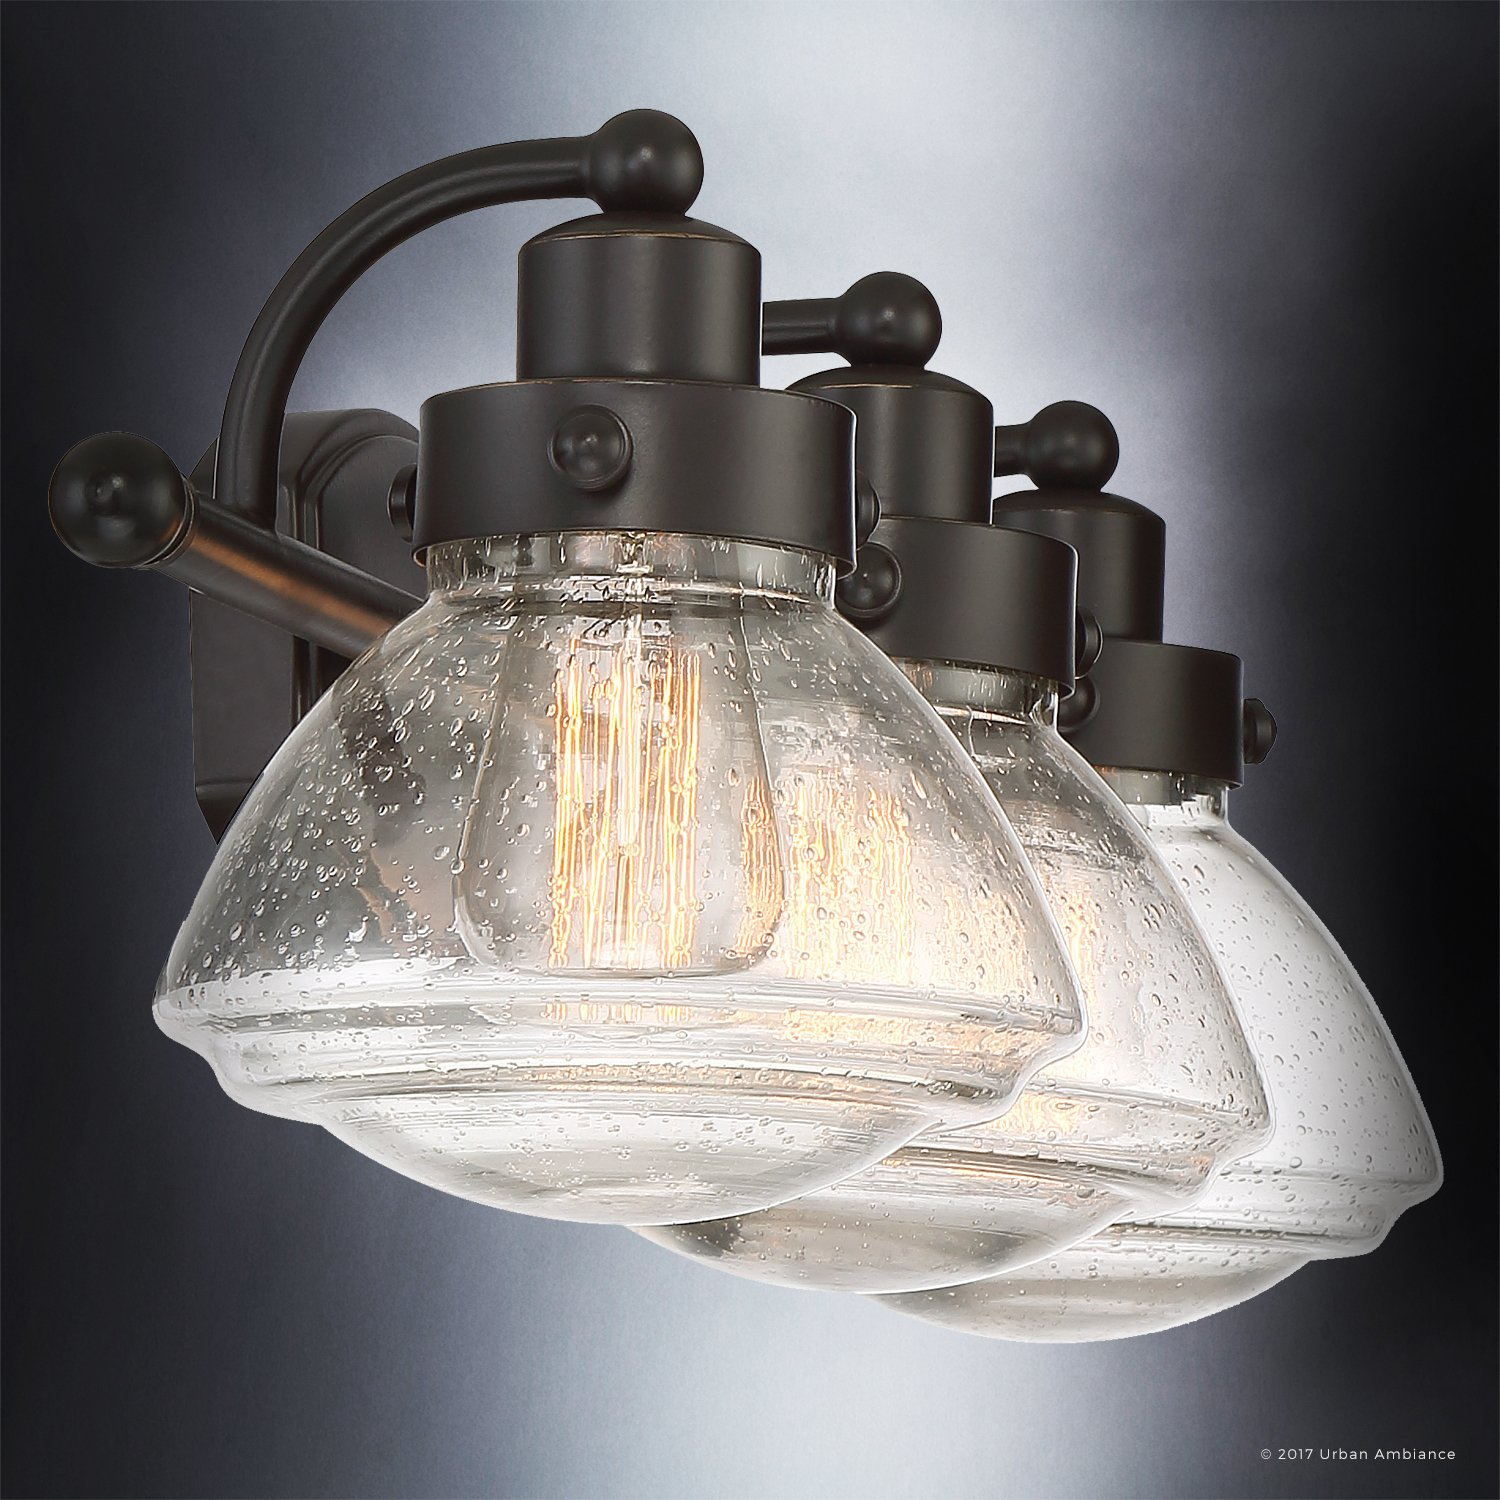 Luxury Transitional Bathroom Vanity Light, Medium Size: 8''H x 25''W, with Rustic Style Elements, Oil Rubbed Parisian Bronze Finish and Seeded Schoolhouse Glass, UQL2652 by Urban Ambiance by Urban Ambiance (Image #5)